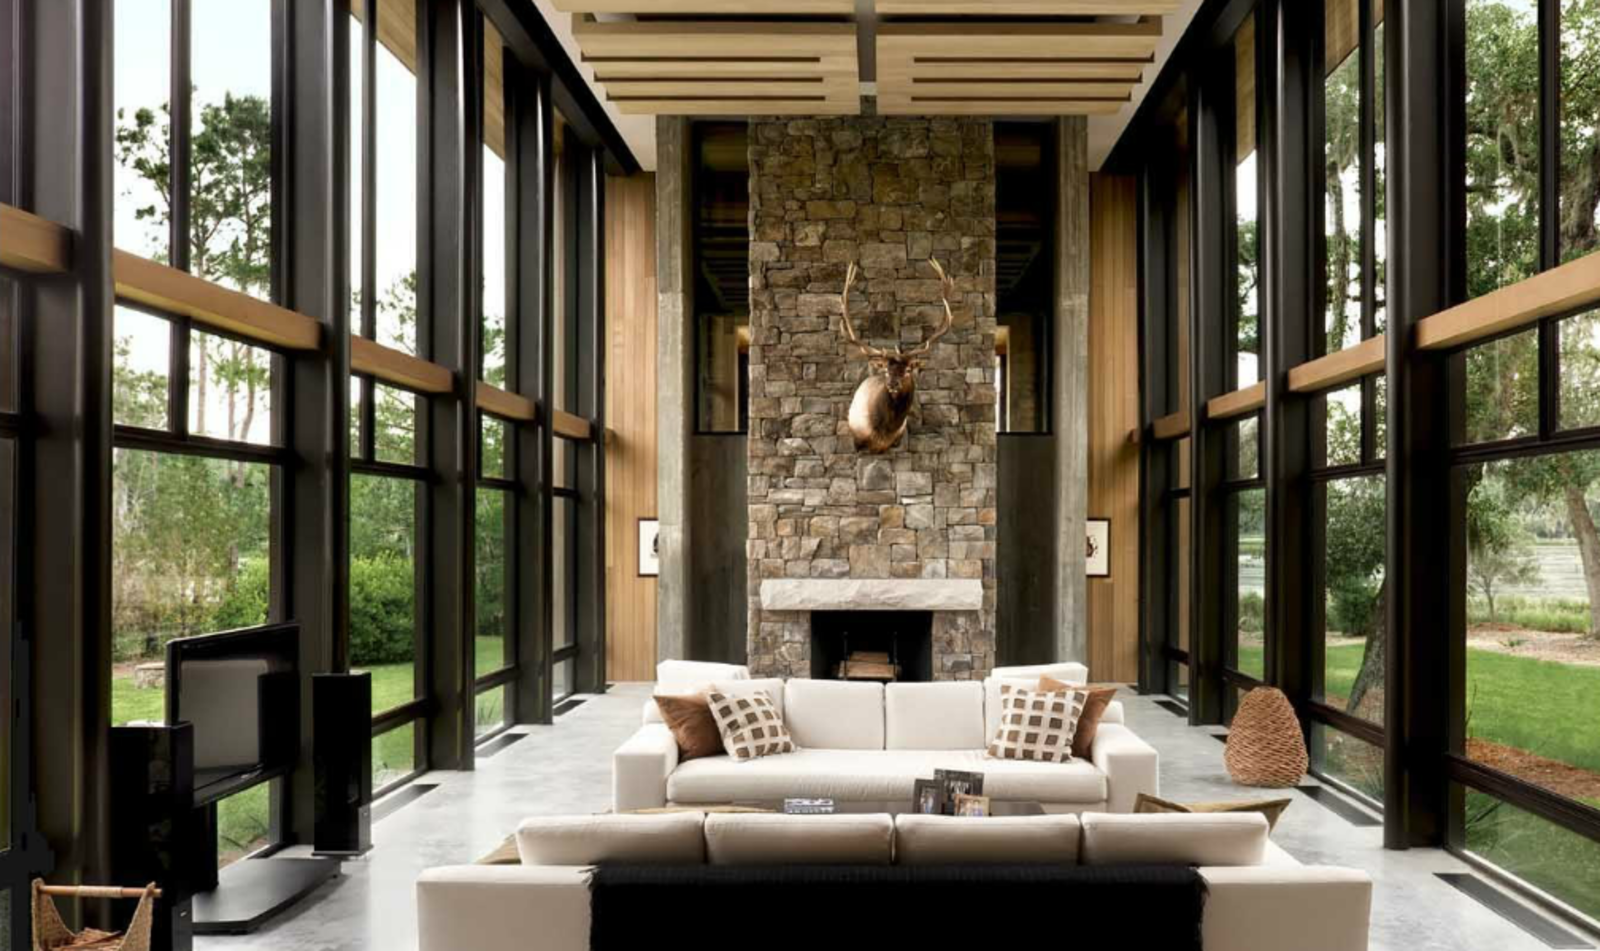 The grand, glass-walled great room is a loft-like space that incorporates living room and dining area. A bedroom and bathroom are located on a lofted mezzanine level, over the kitchen, pantry, and utility room.  97+ Modern Fireplace Ideas by Dwell from A Modern Home in a South Carolina Marsh